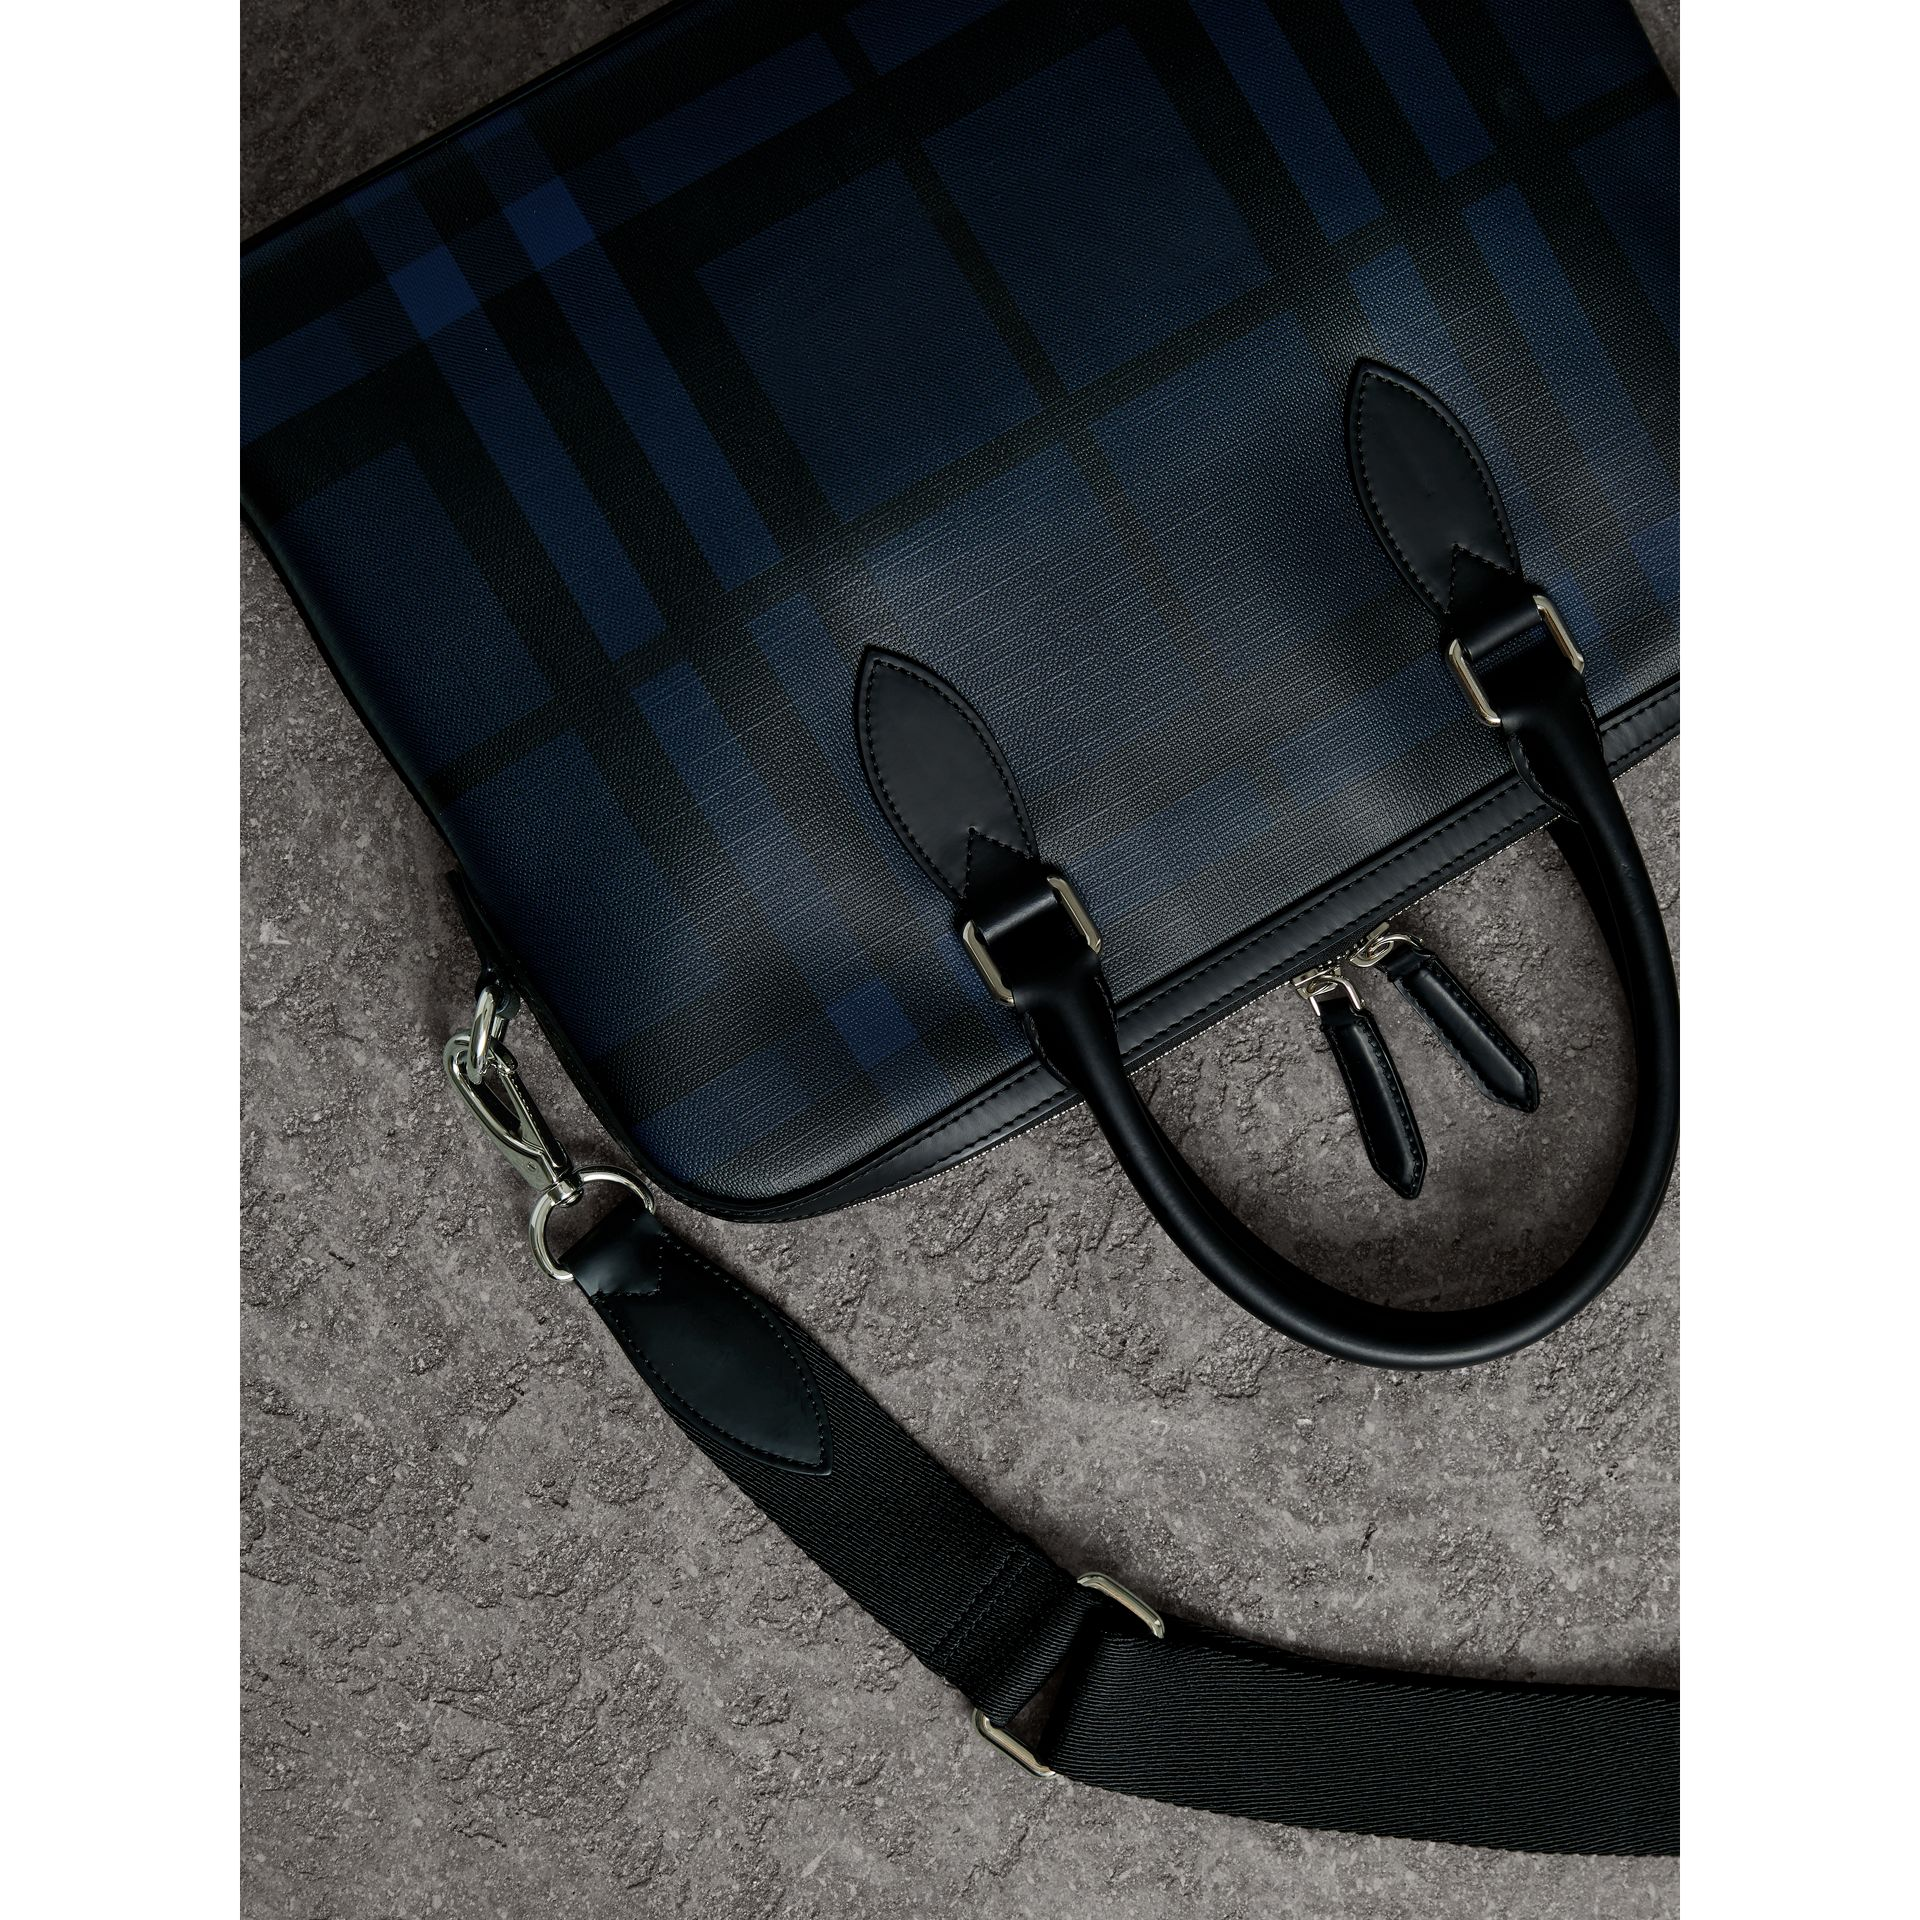 Medium Leather Trim London Check Briefcase in Navy/black - Men | Burberry United Kingdom - gallery image 5